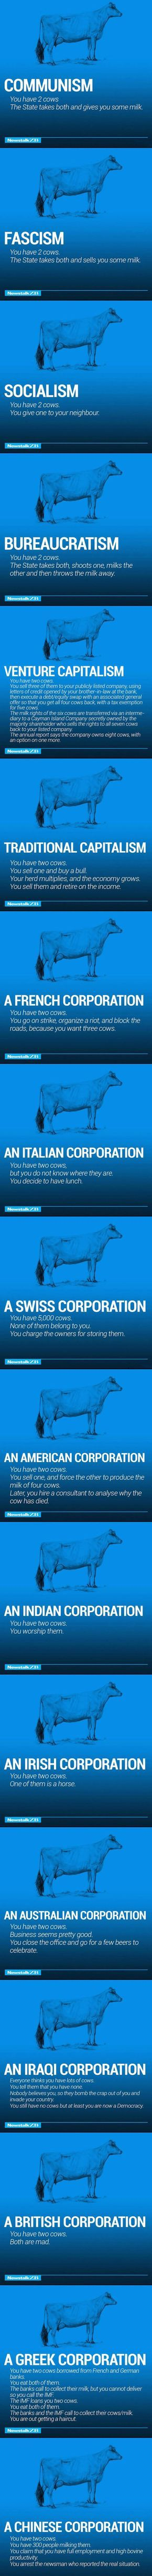 17 economic models explained with 2 cows | The Poke